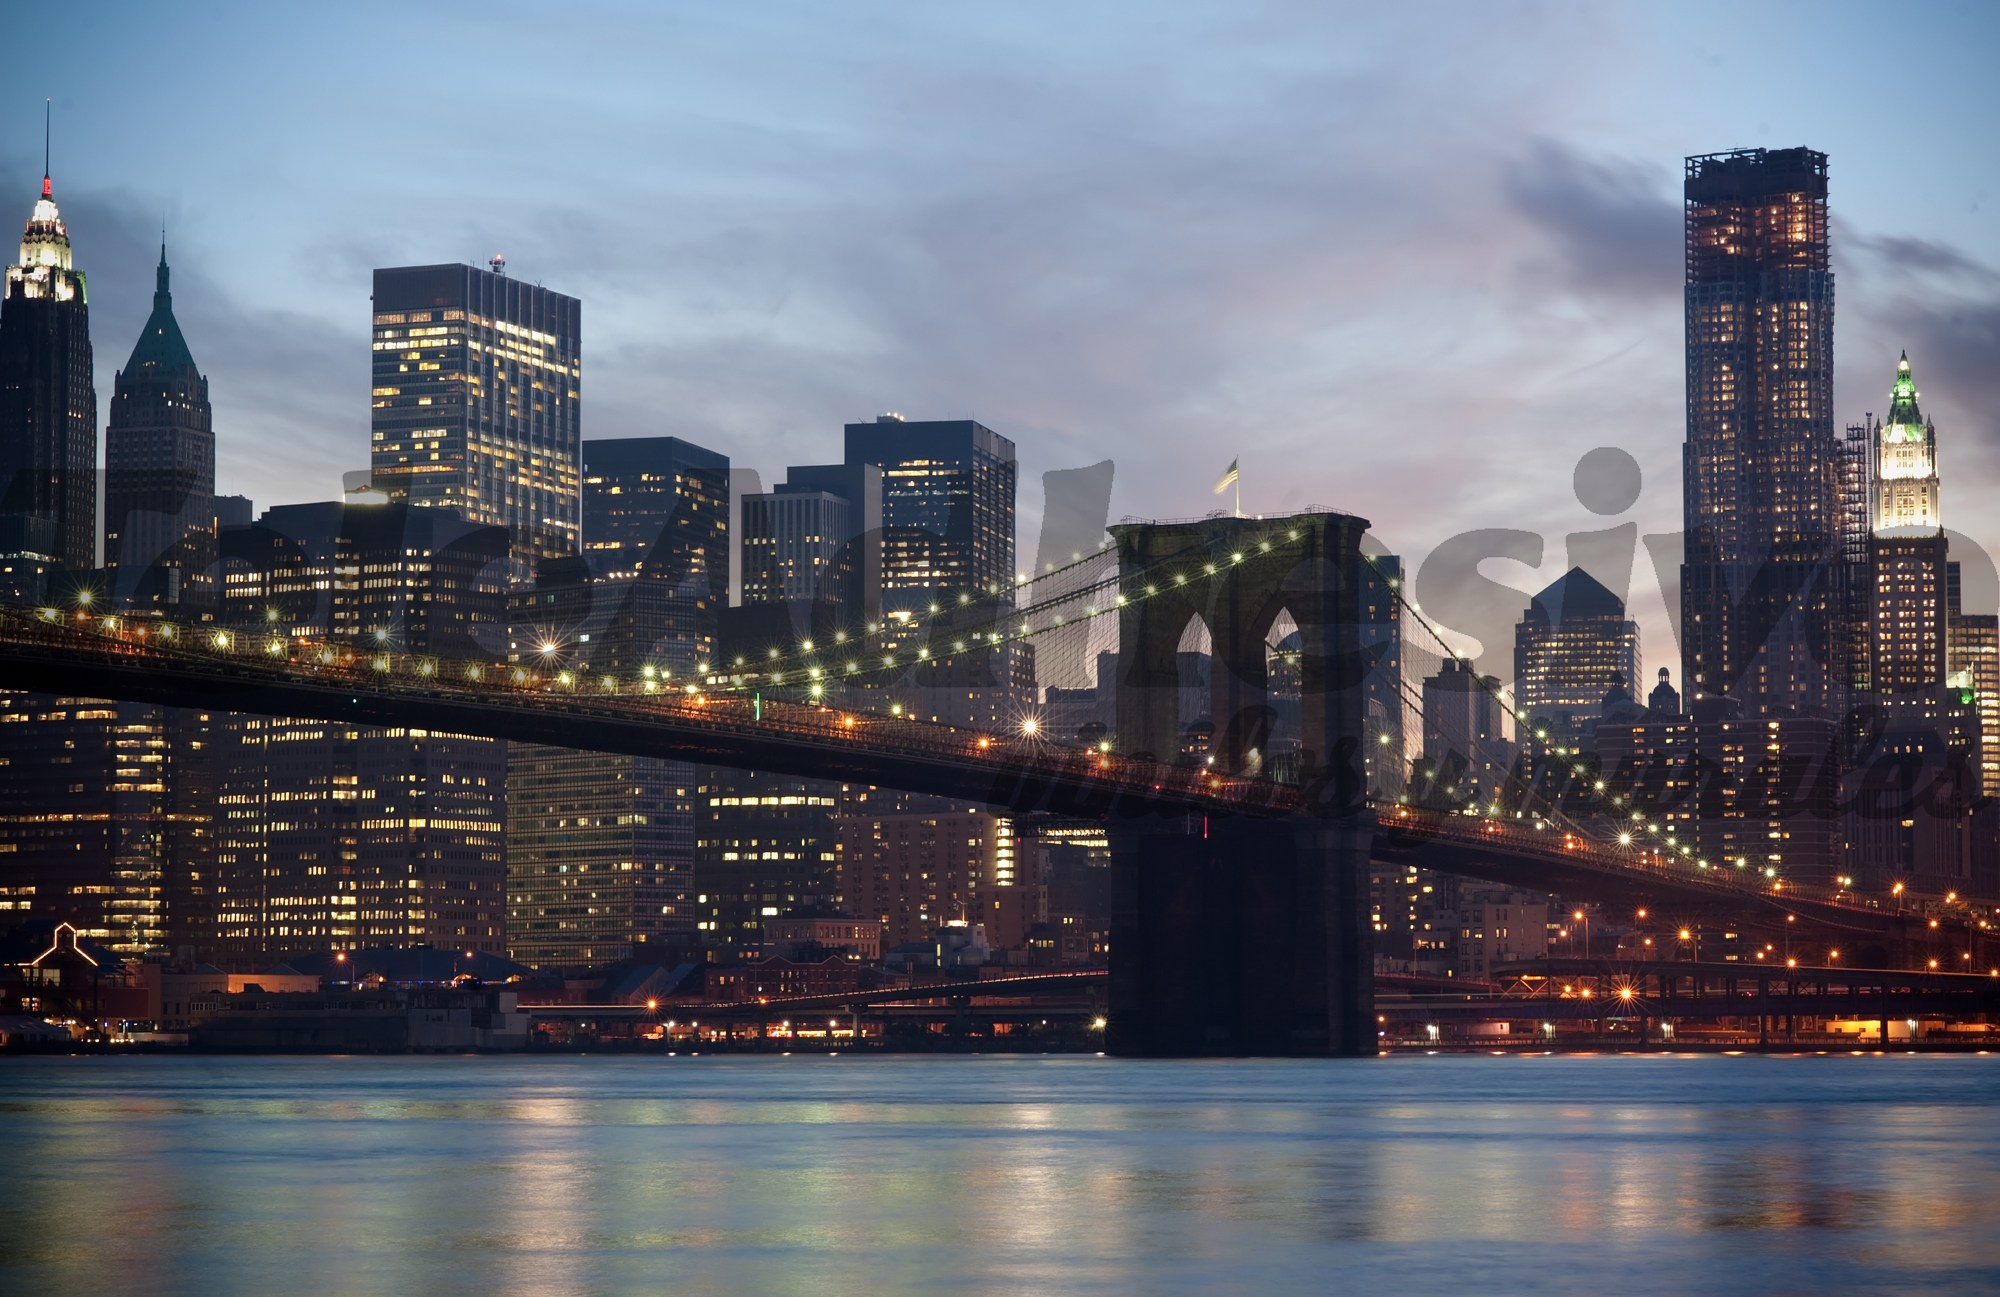 Fototapeten: Brooklyn Bridge im Nebel